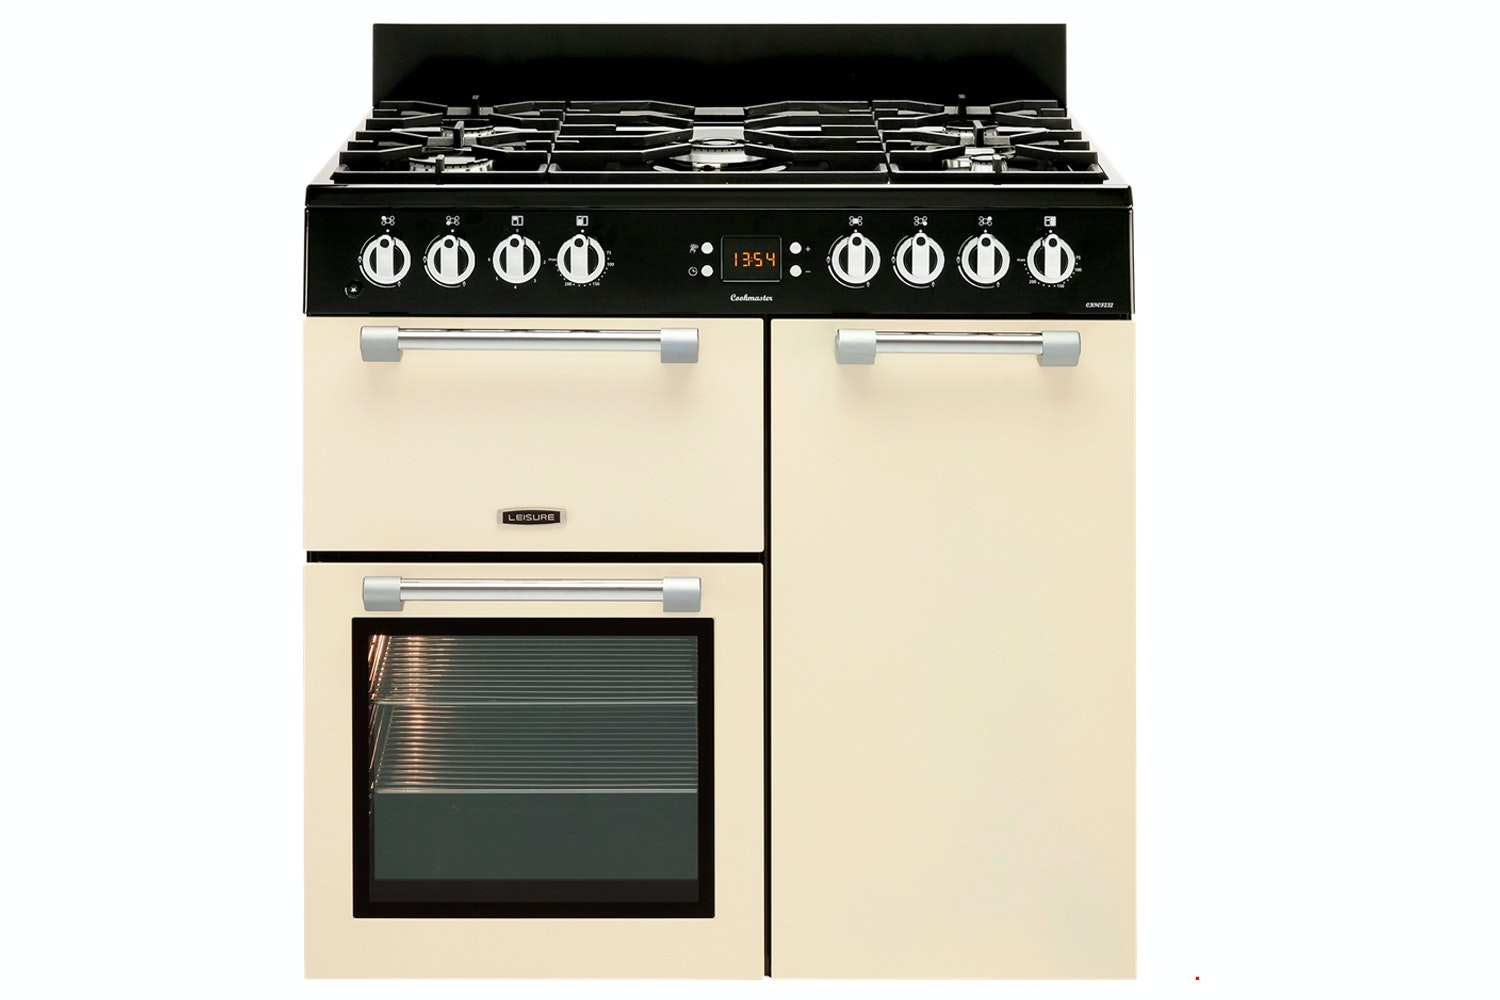 Leisure 90cm Gas Range Cooker | CK90F232C | Cream